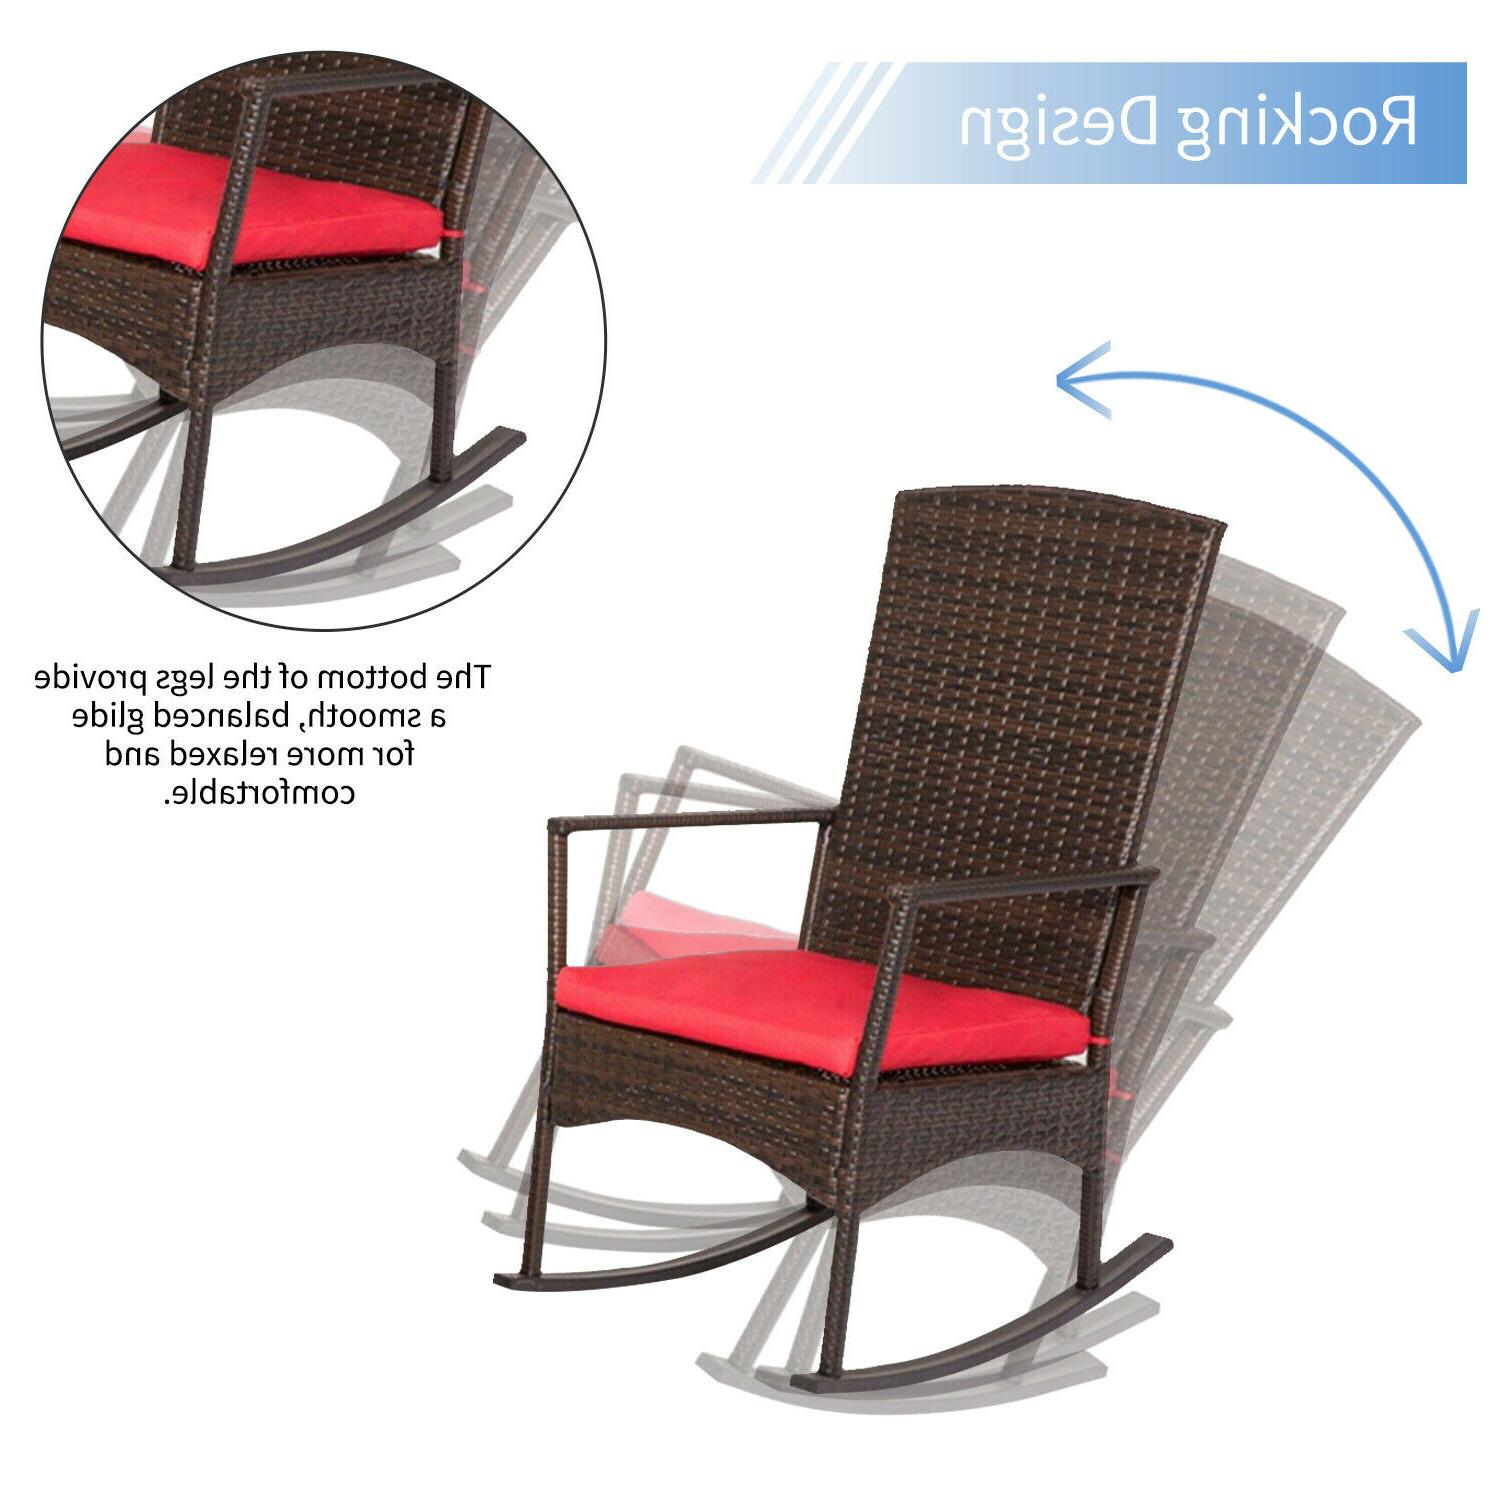 Outdoor Wicker Rocking Chair Chair Furniture W/ Red